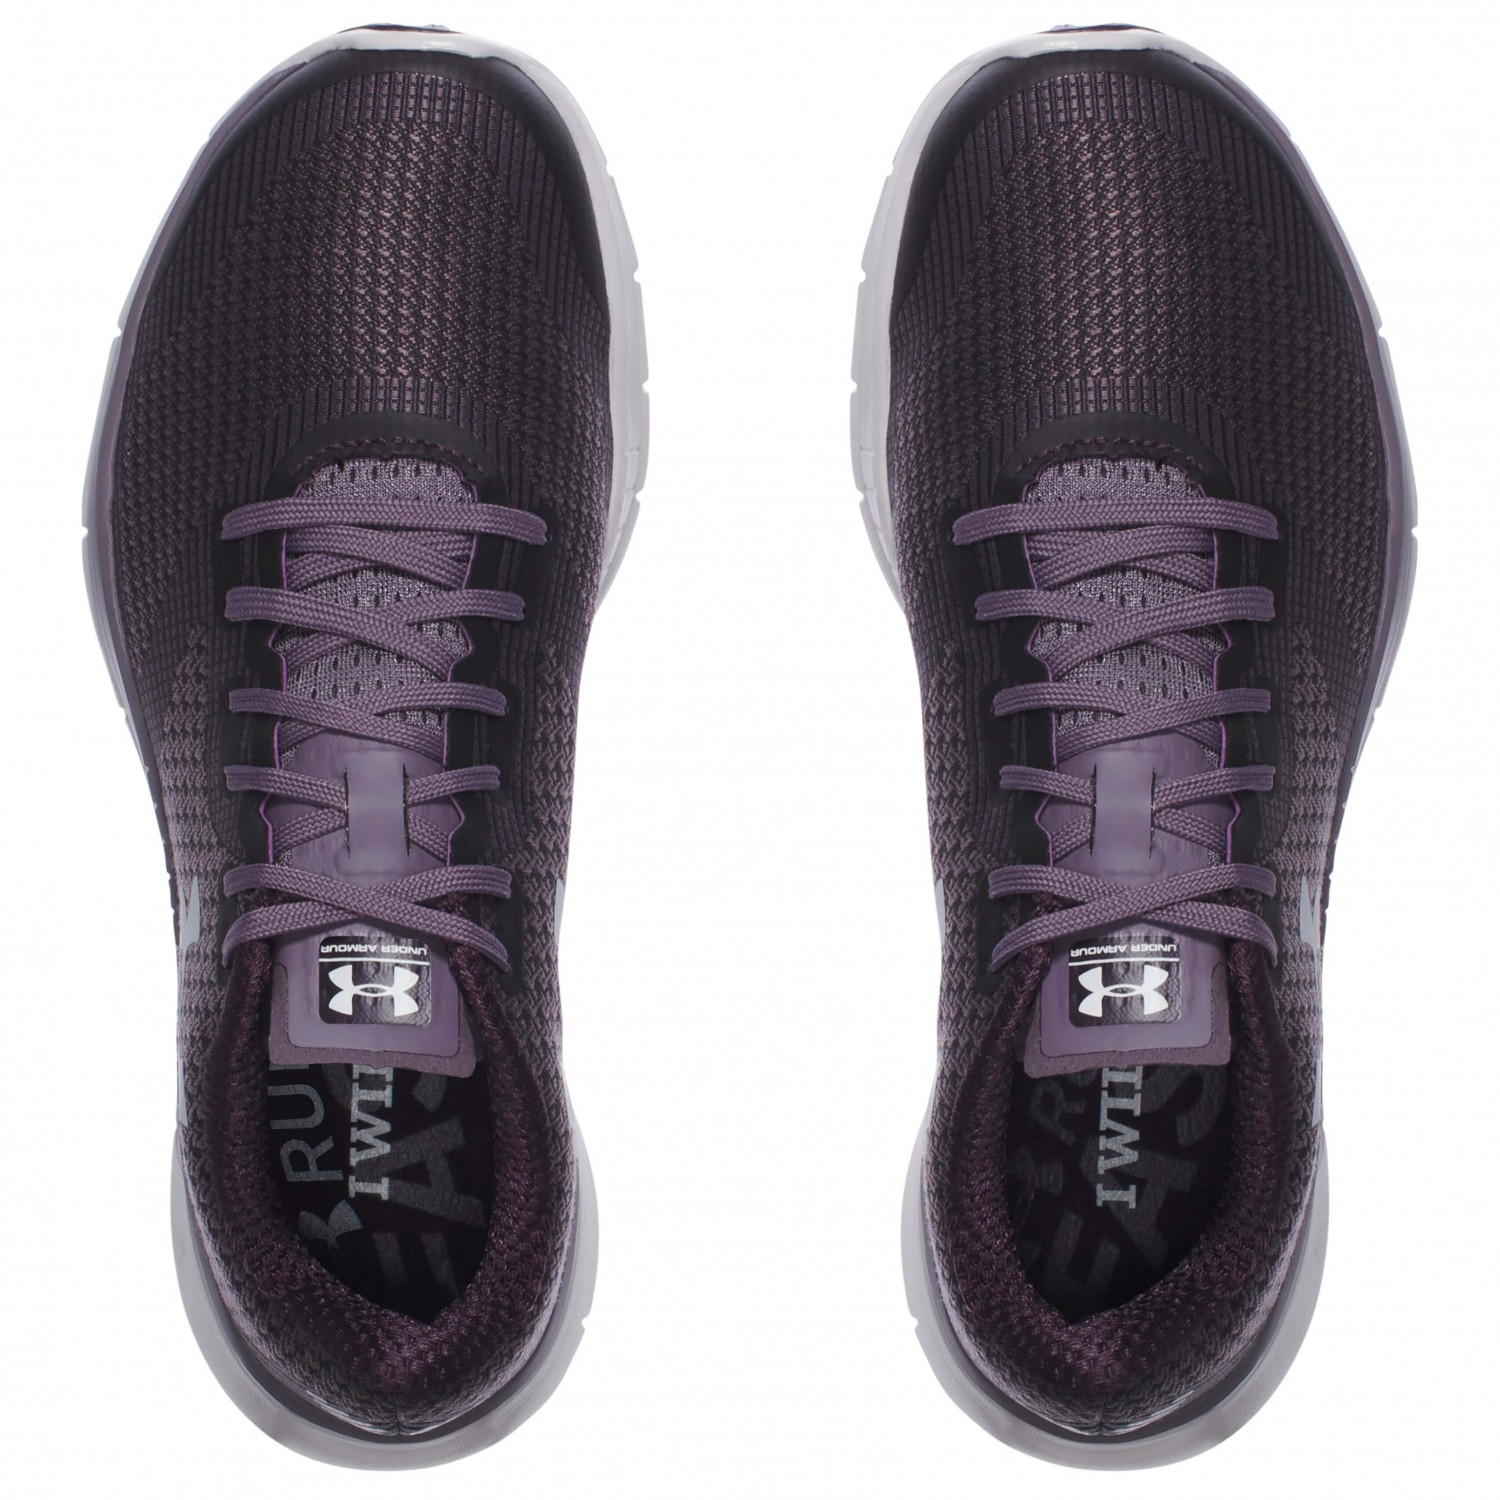 timeless design 5d43b 84c22 Under Armour UA Charged Lightning - Fitness Shoes Women's ...